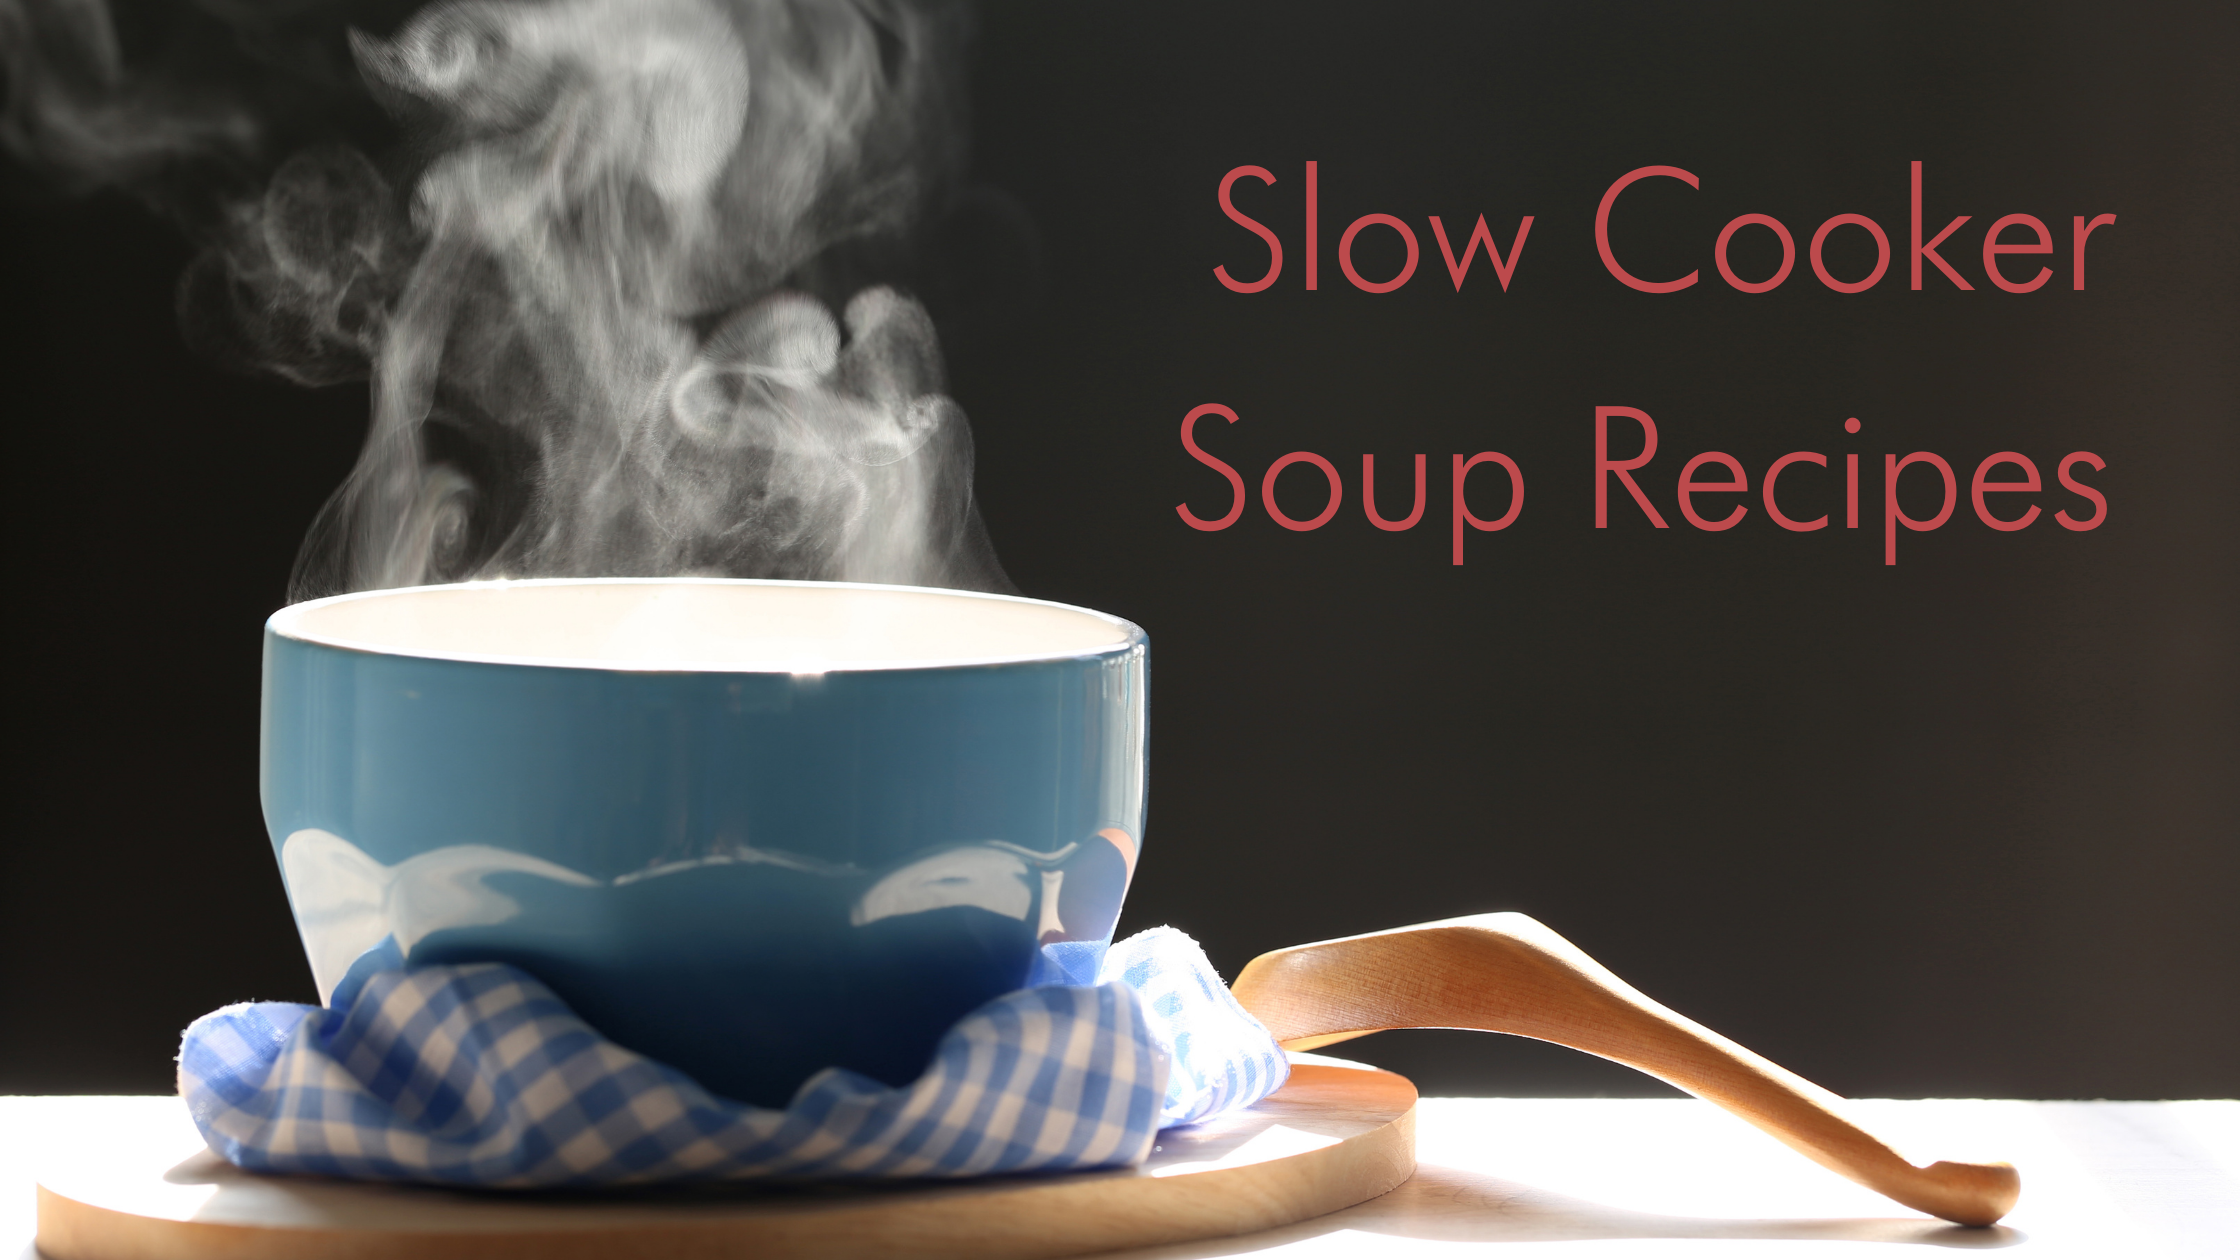 Crockpot Soup Recipes : stock photo of blue soup bowl with steam rising with a spoon sitting next to it. Labeled with post title